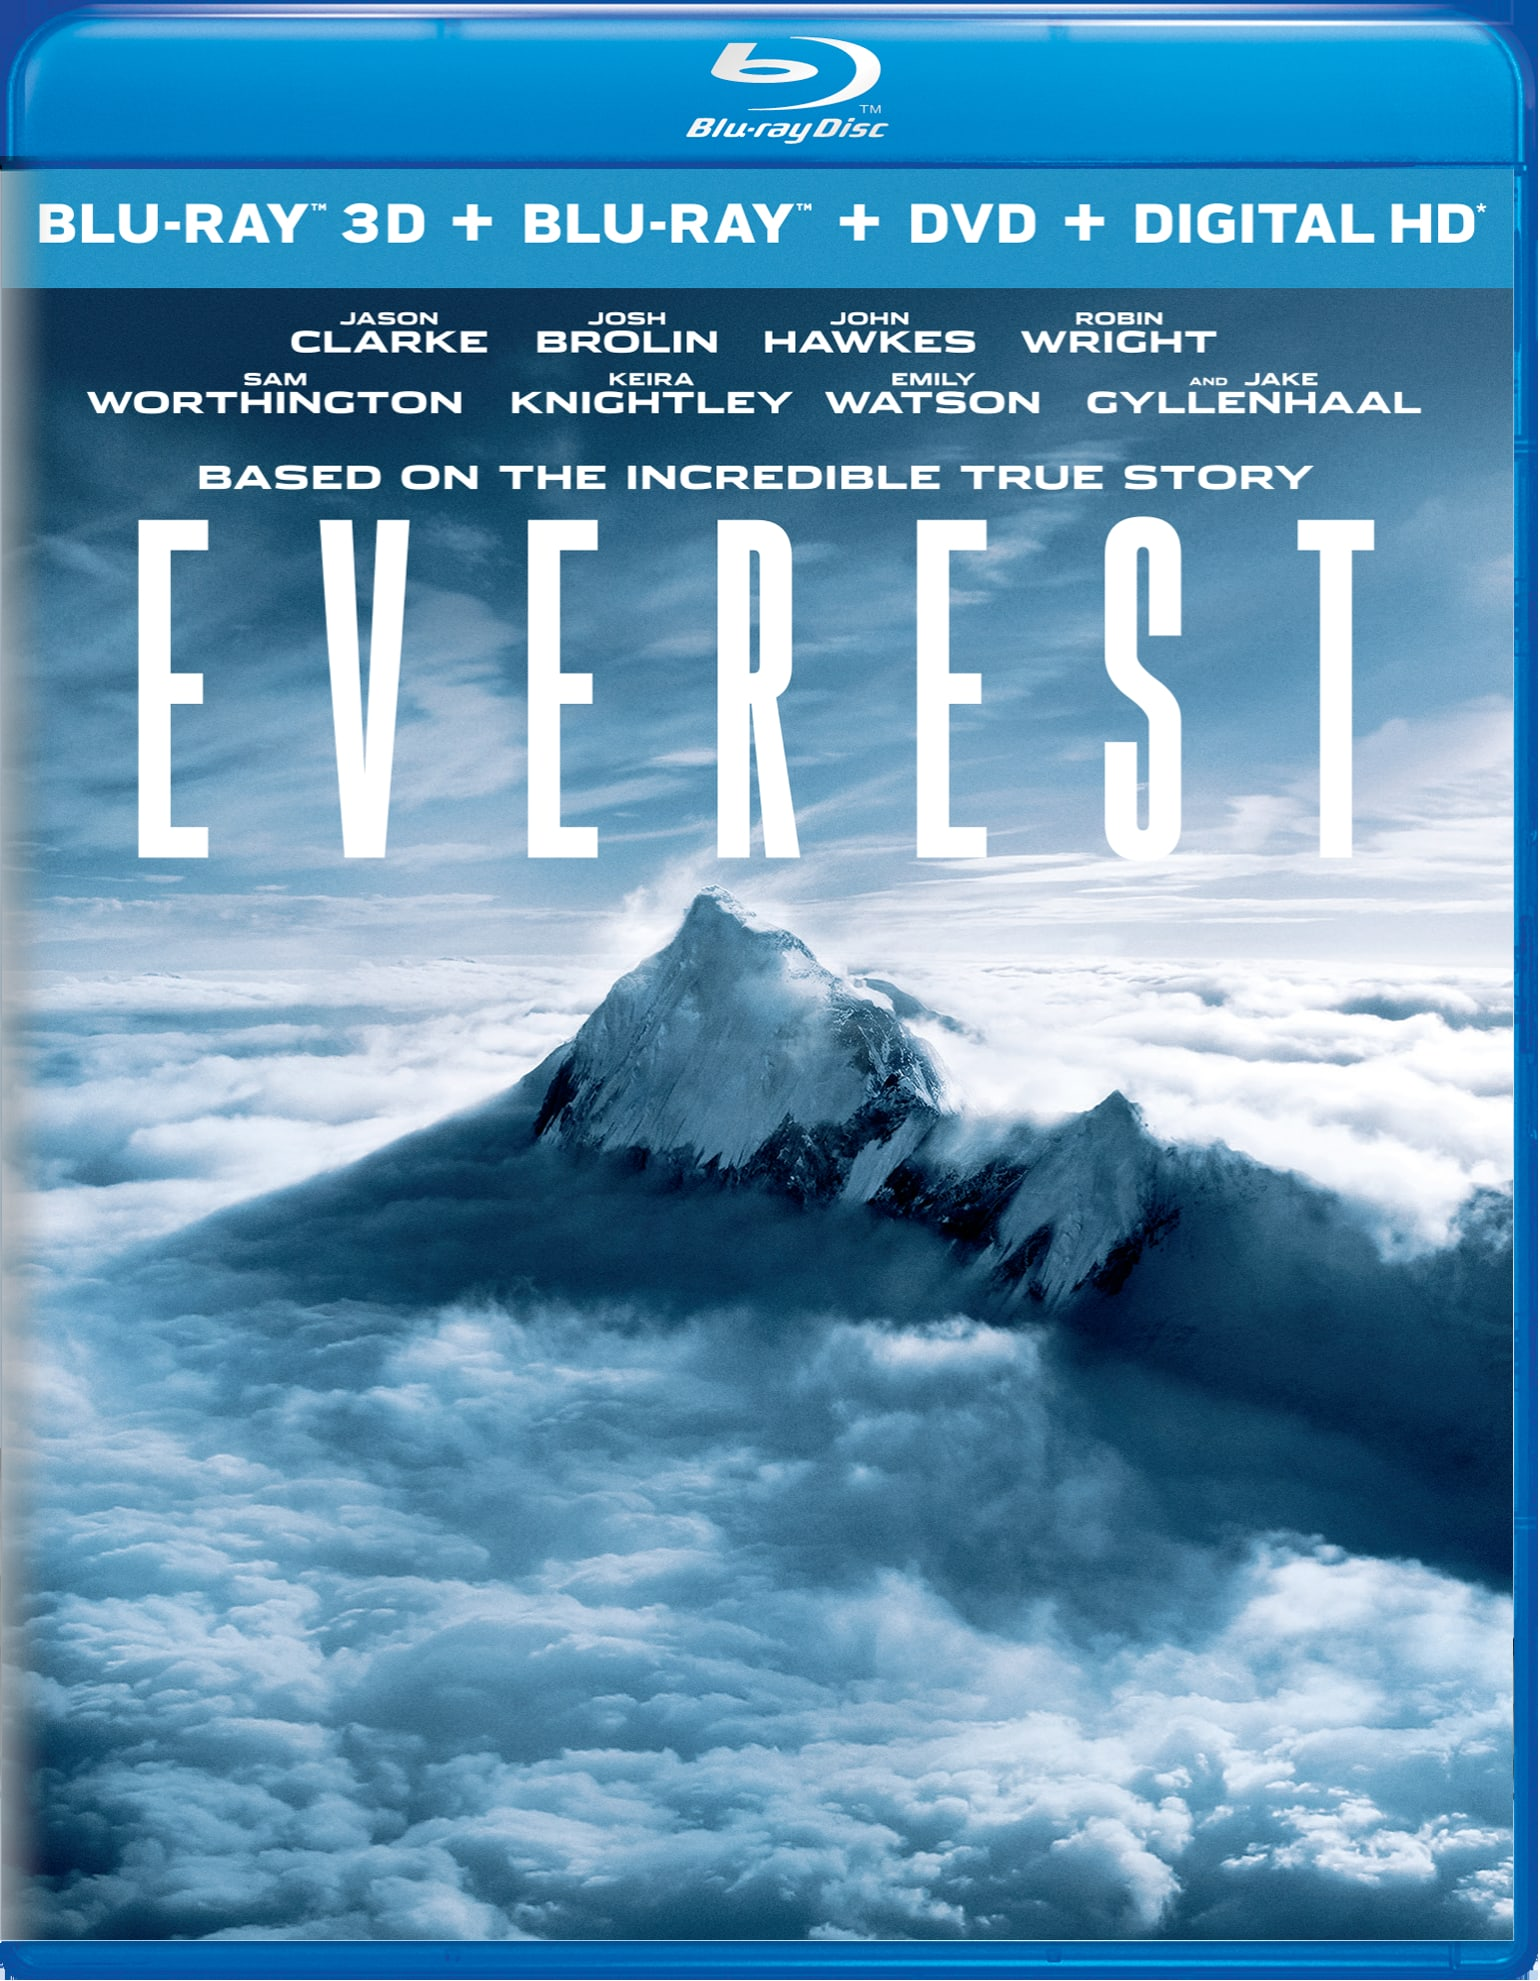 Everest 3D (DVD + Digital) [Blu-ray]